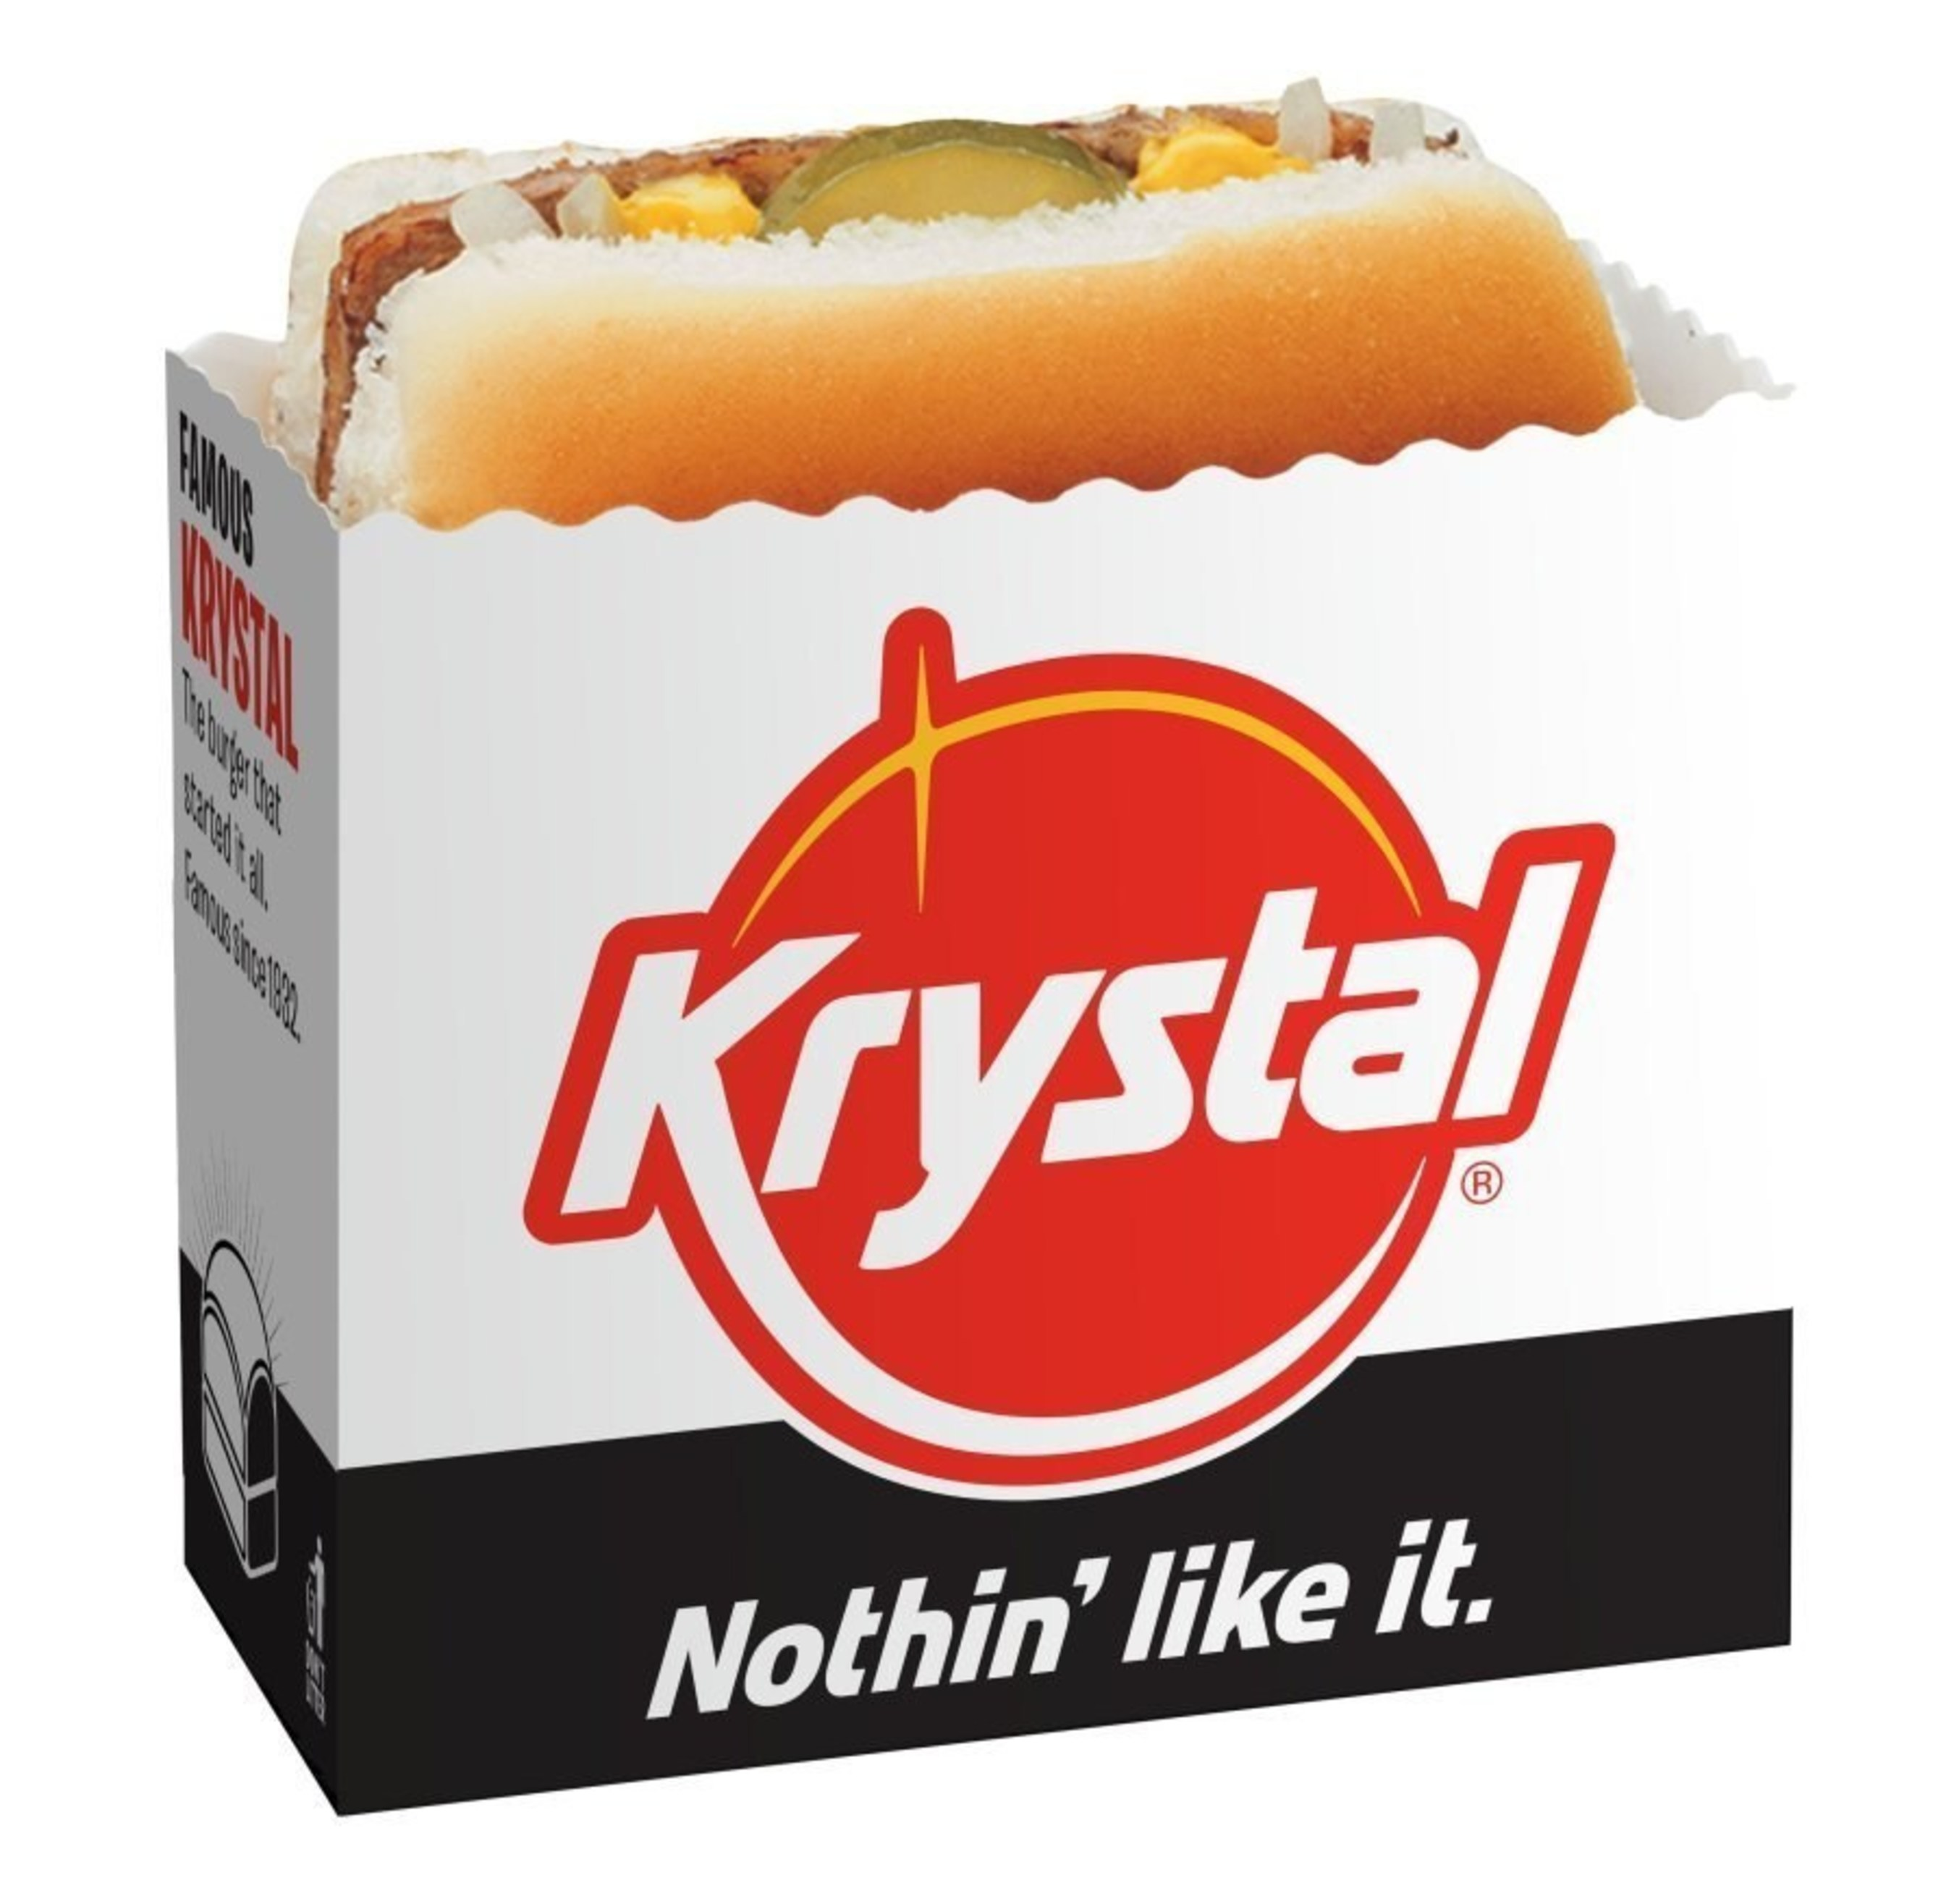 Krystal® Announces All-Day Happy Hour on Wednesday, March 16